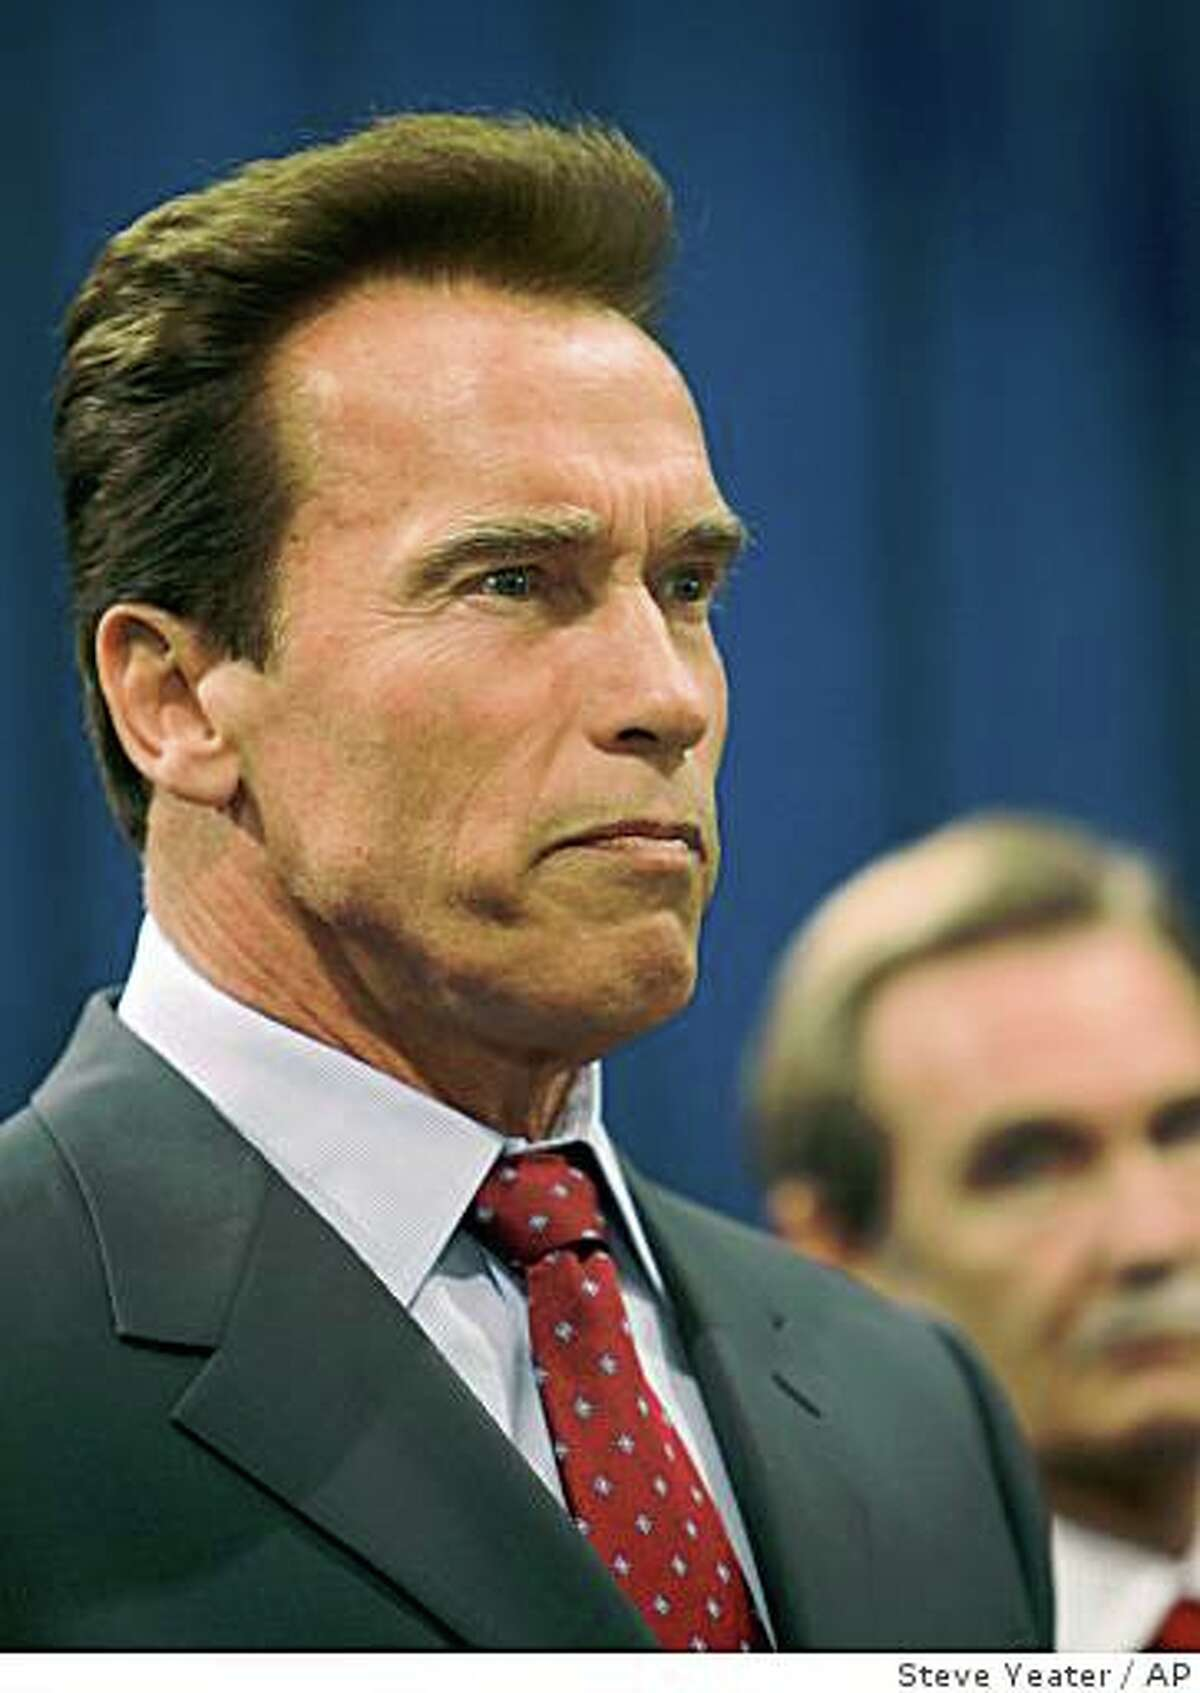 California Governor Arnold Schwarzenegger talks to reporters before signing an executive order eliminating 22,000 part-time and temporary positions and ordered that up to 200,000 state workers receive the federal minimum wage during a news conference at the Capitol in Sacramento, Calif., on Thursday, July 31, 2008. (AP Photo/Steve Yeater)